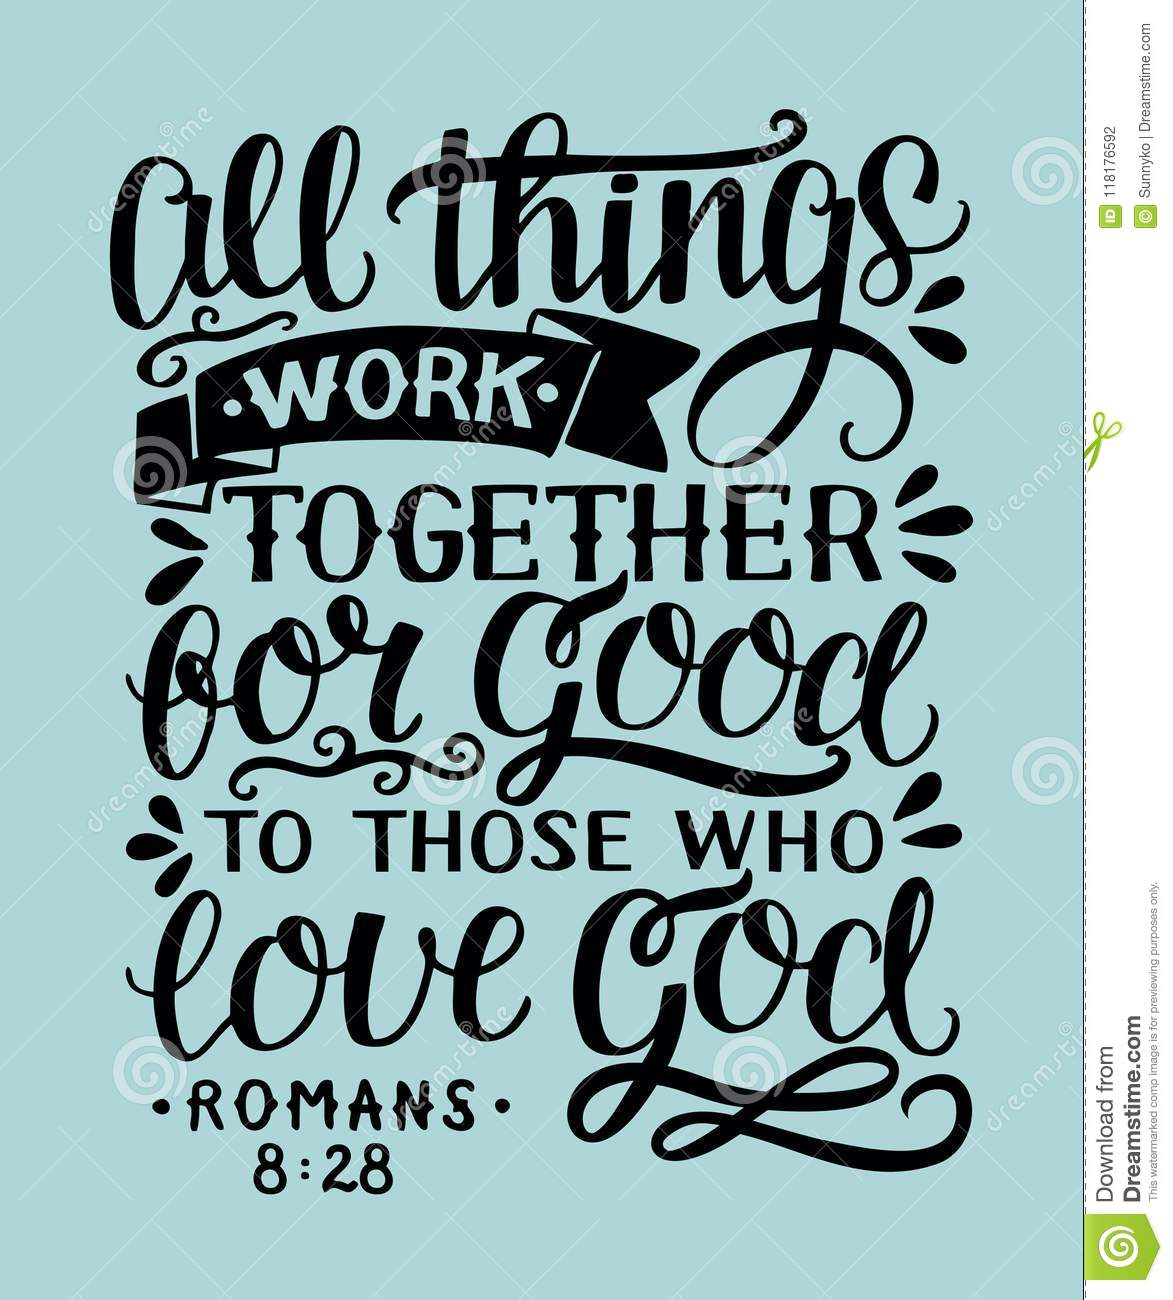 Hand Lettering With Bible Verse All Things Work Together For Good To ...